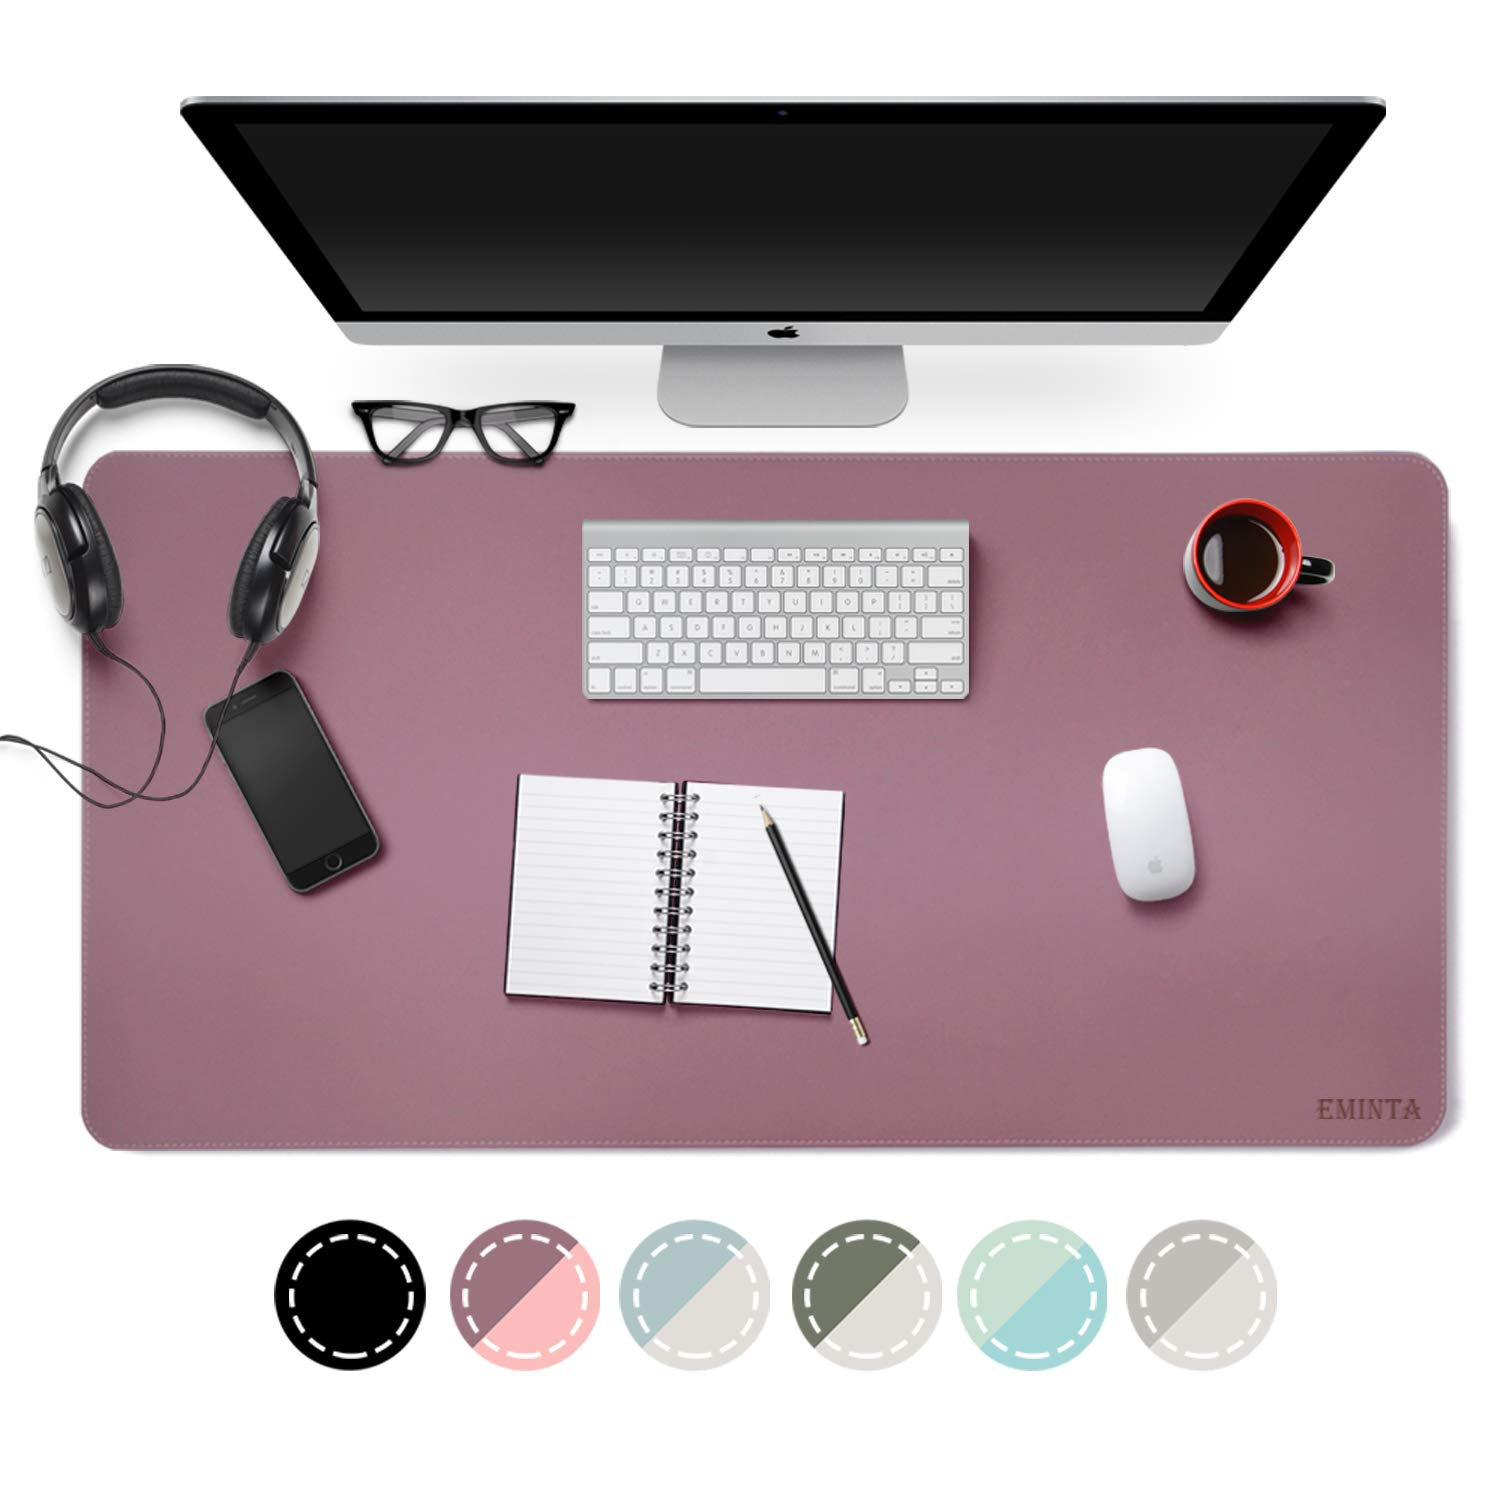 Dual Sided PU Leather Desk Pad, 2019 Upgrade Sewing Edge Office Desk Mat, Waterproof Desk Blotter Protector, Desk Writing Mat Mouse Pad (Purple/Pink, 31.5'' x 15.7'') by EMINTA